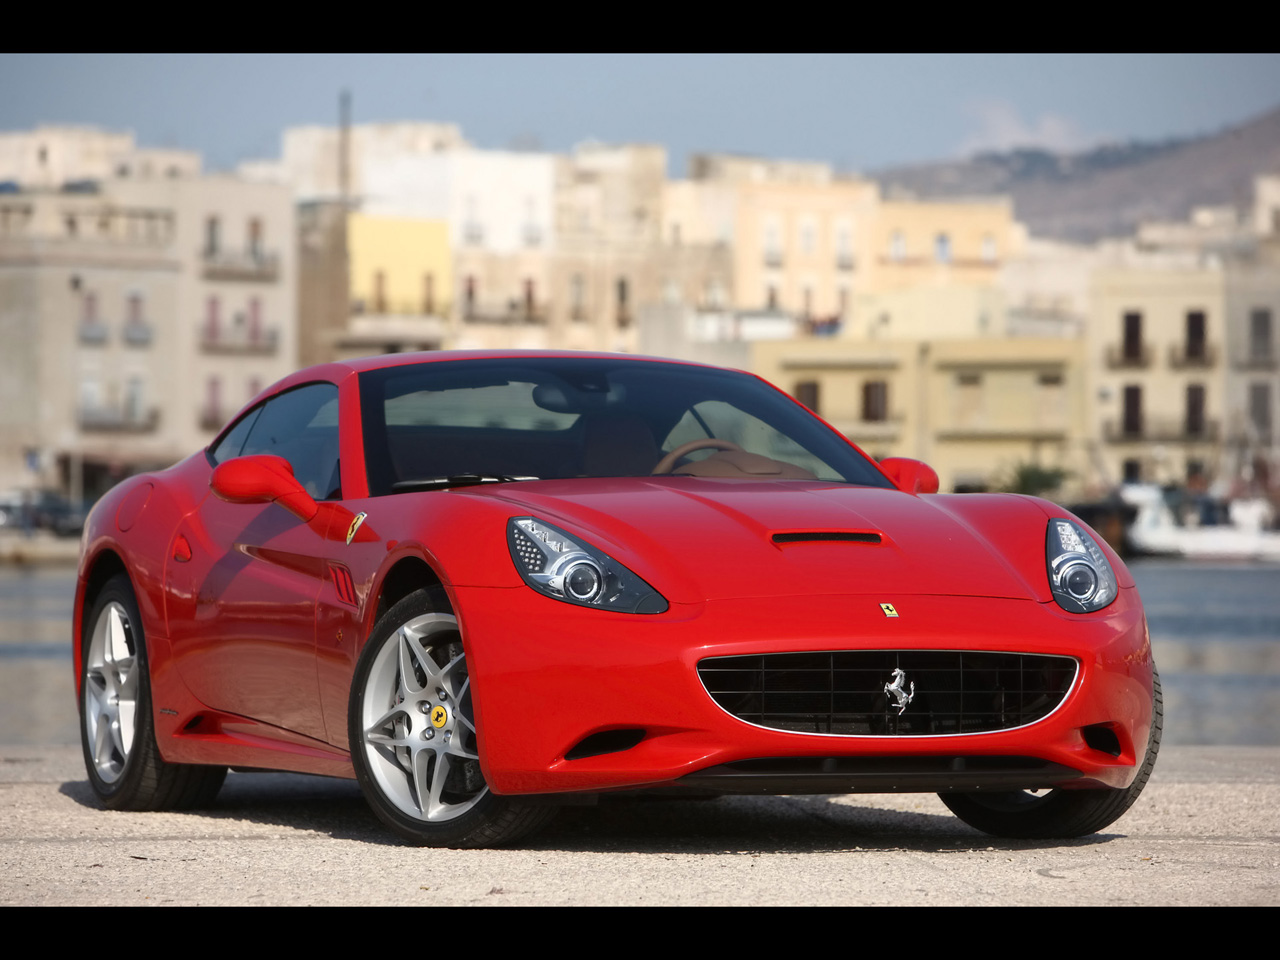 2009 Ferrari California #3